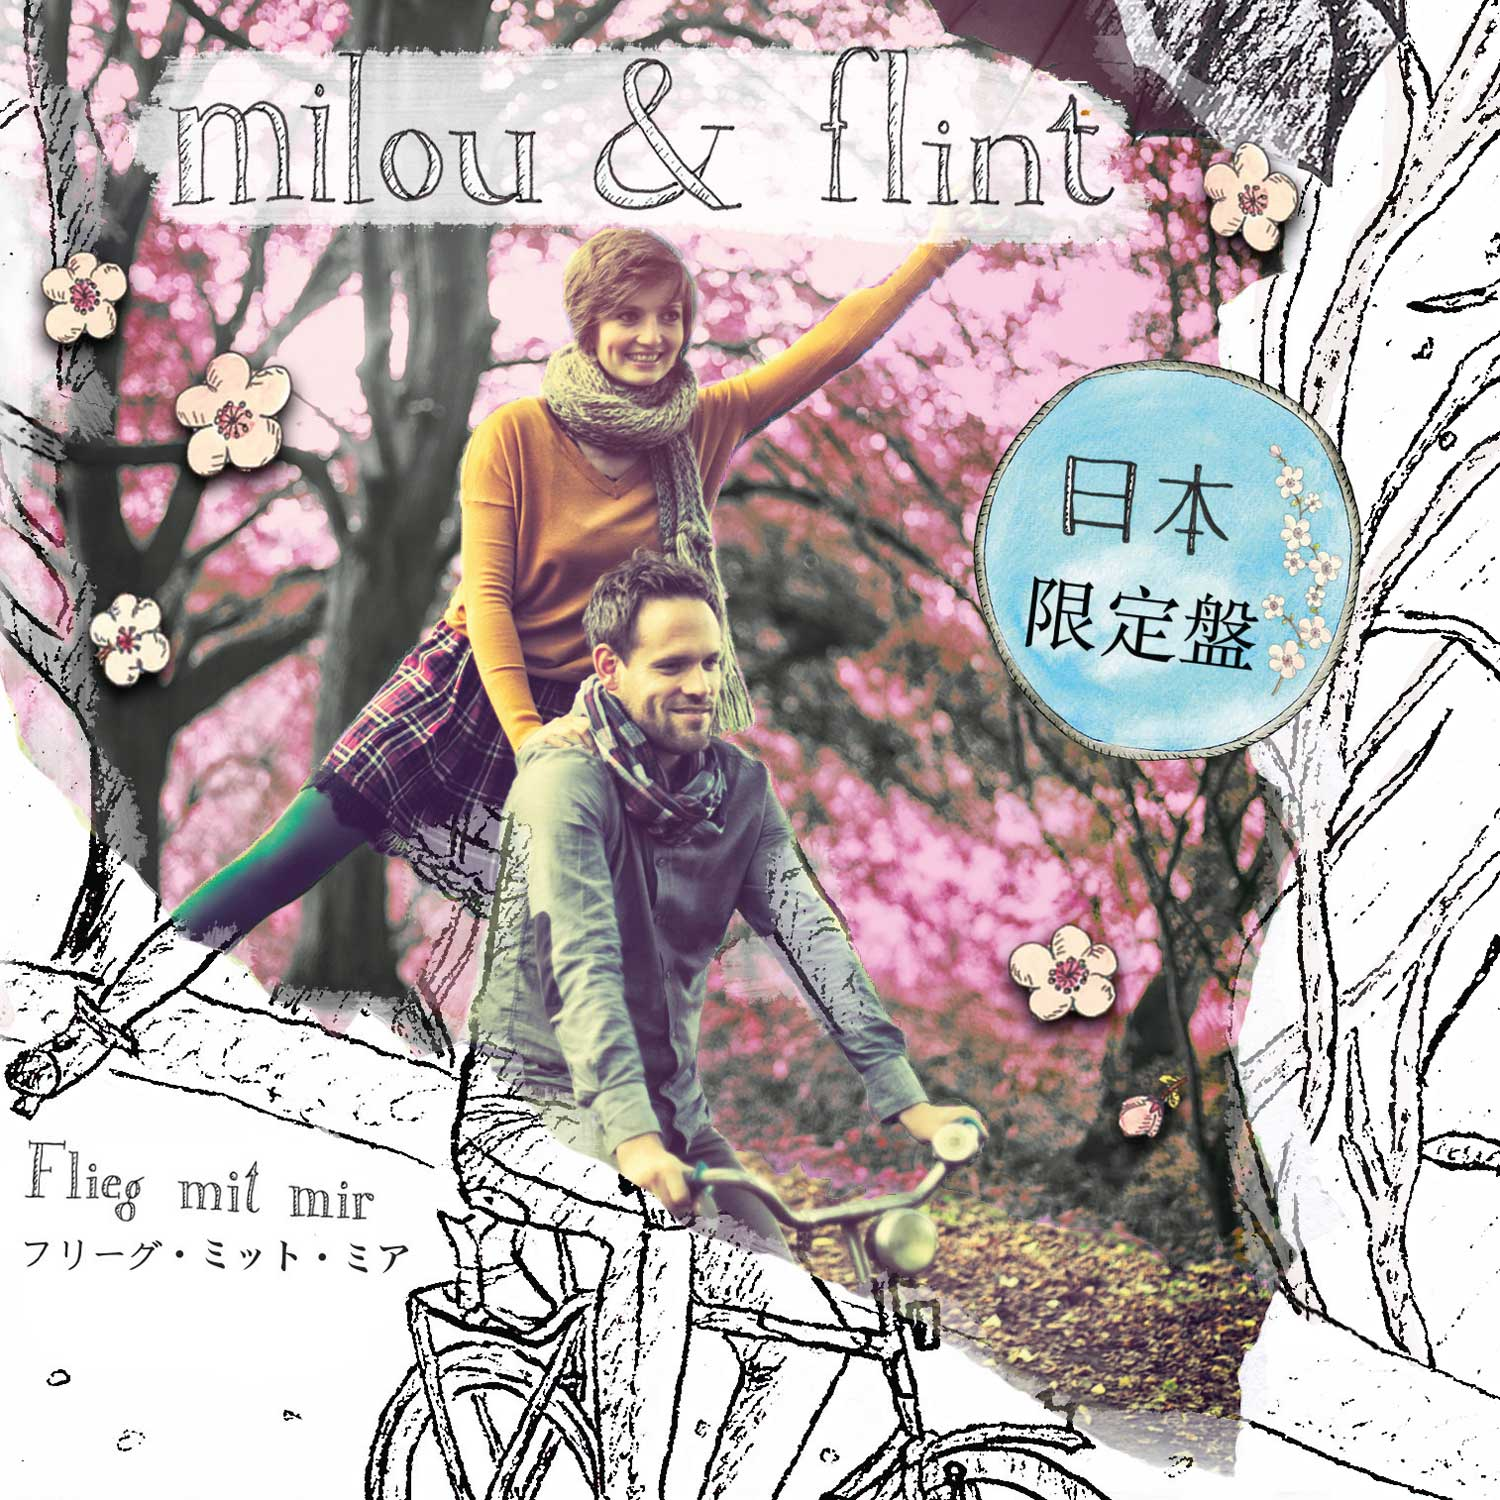 Milou & Flint - Flieg mit mir (Japan-Edition)